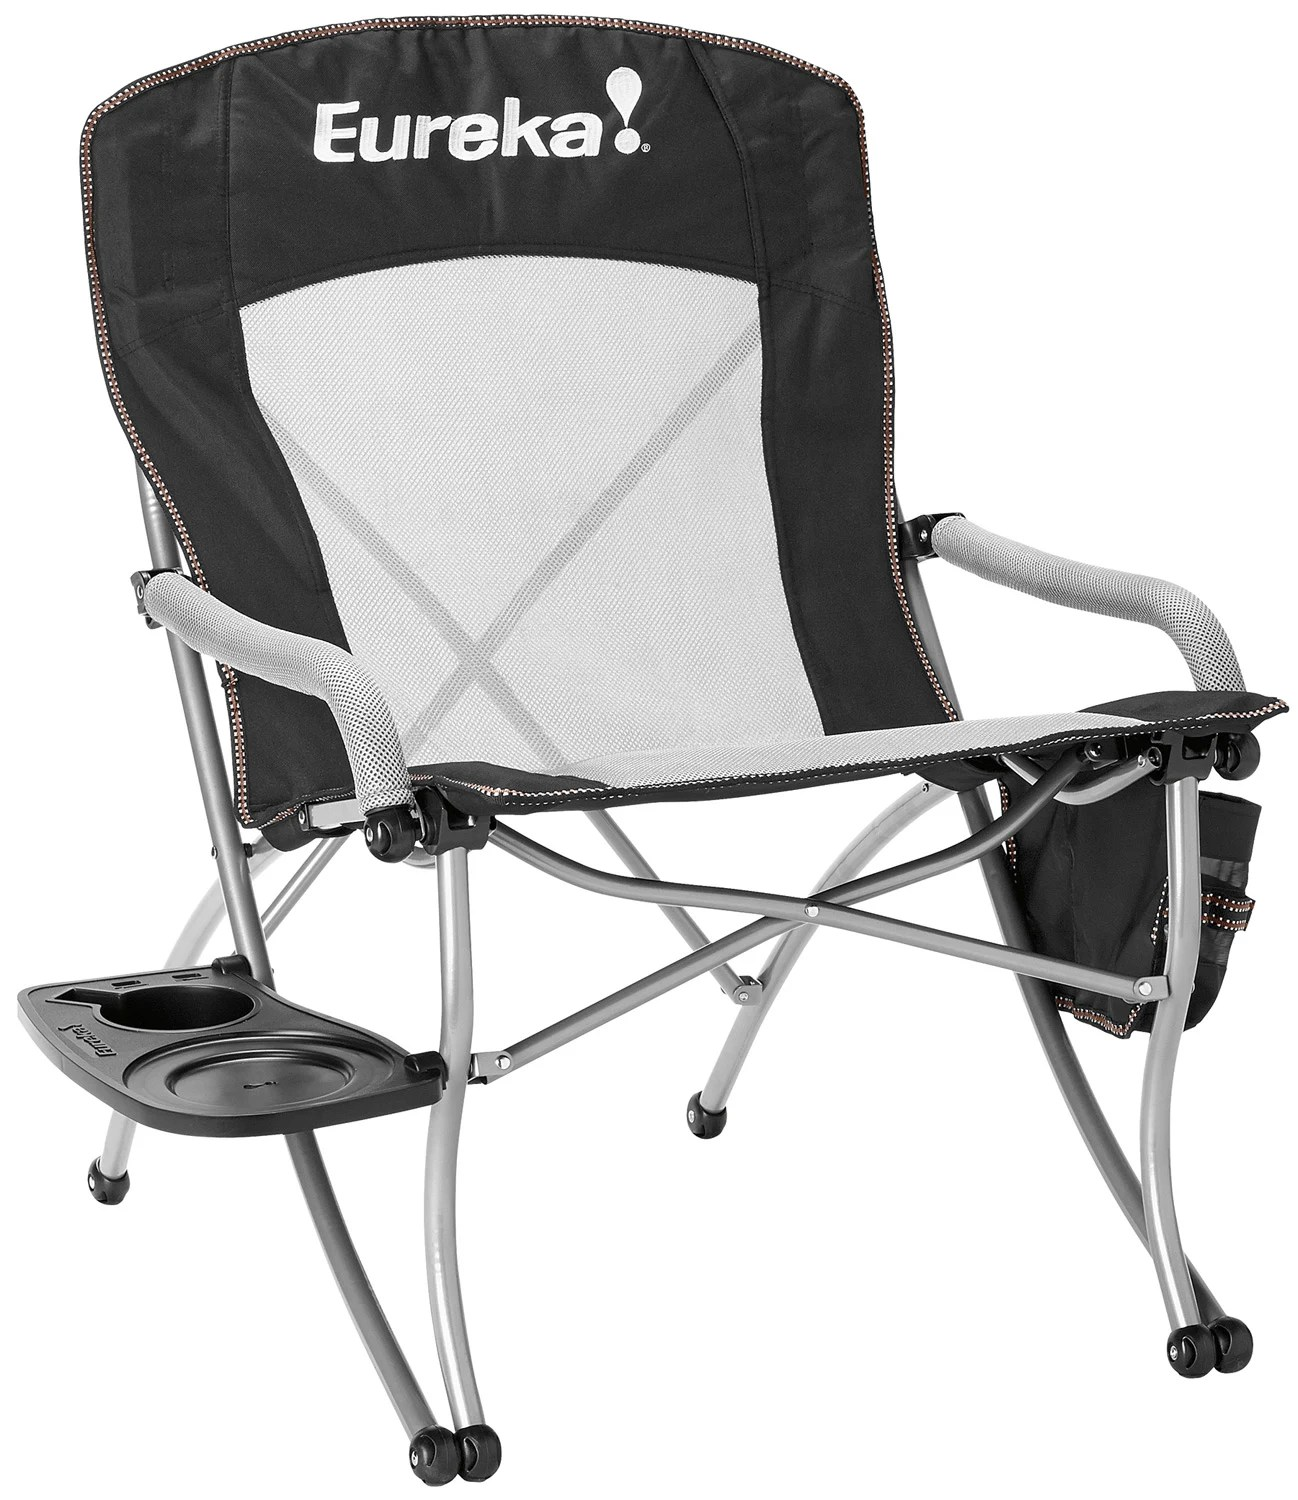 camping chair accessories captains gym exercises eureka curvy w side table camp